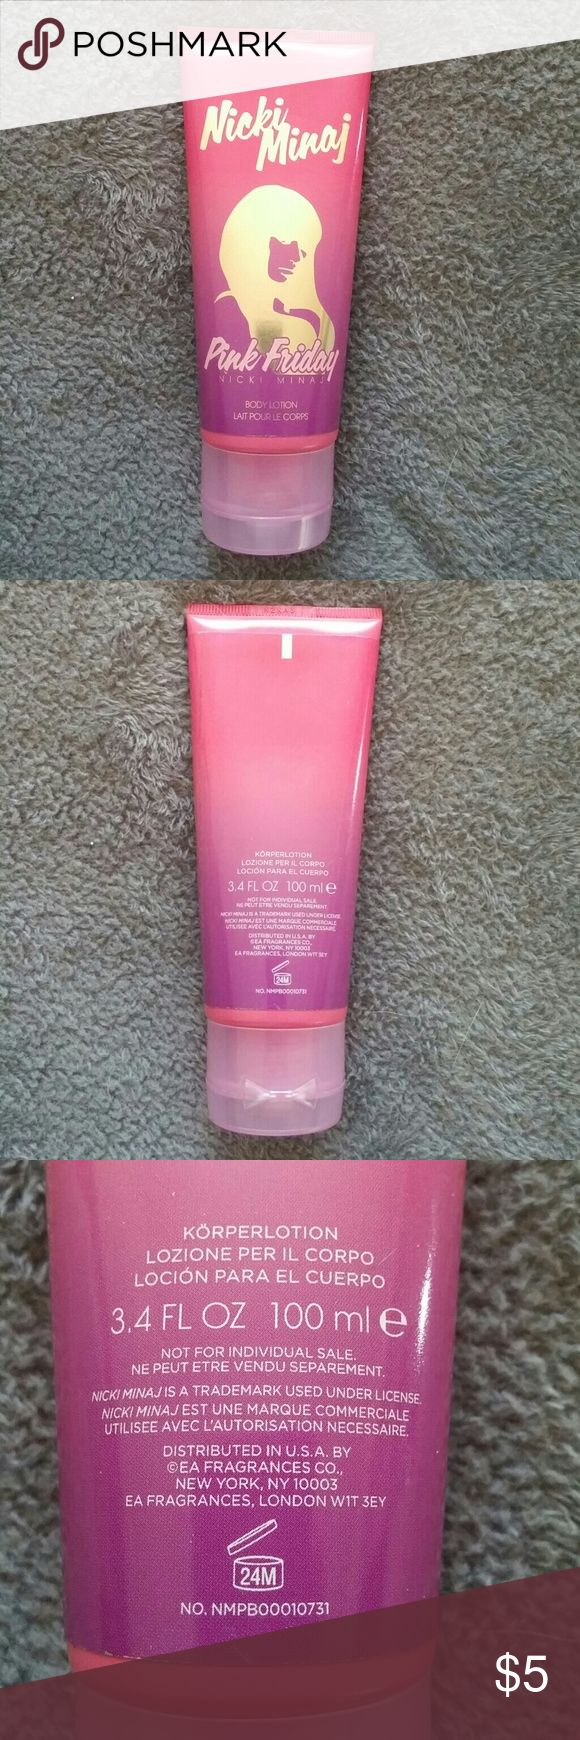 Nicki Minaj Pink Friday Body Lotion This lotion has been used a few times. I can't see how much is left, but feels to be at least halfway full.  This is a used item listing.  This listing comes from a smoke-free/pet friendly home.  NO TRADES--NO HOLDS--NO PAYPAL  ** I AM OPEN TO OFFERS! PLEASE USE THE OFFER BUTTON! **  Your purchase will be wrapped with care and includes a FREE surprise gift!!  Perfect for adding to a bundle! Nicki Minaj Other